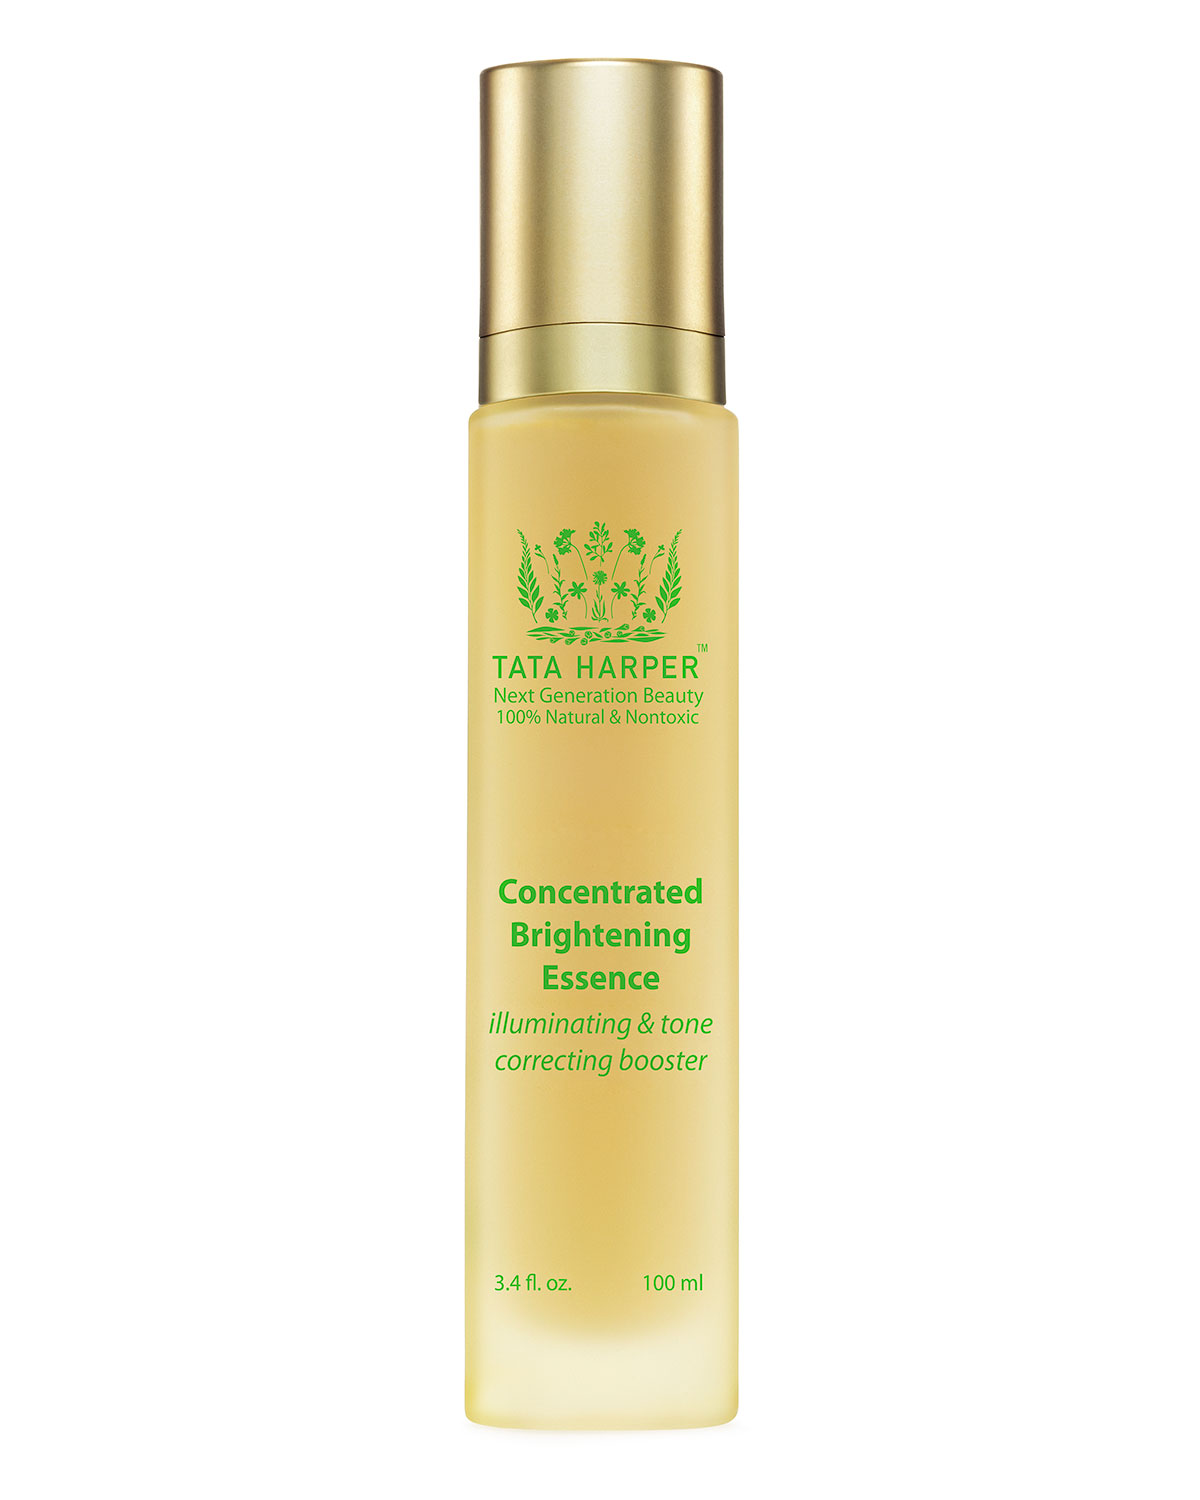 Concentrated Brightening Essence, 3.4 oz. - Tata Harper